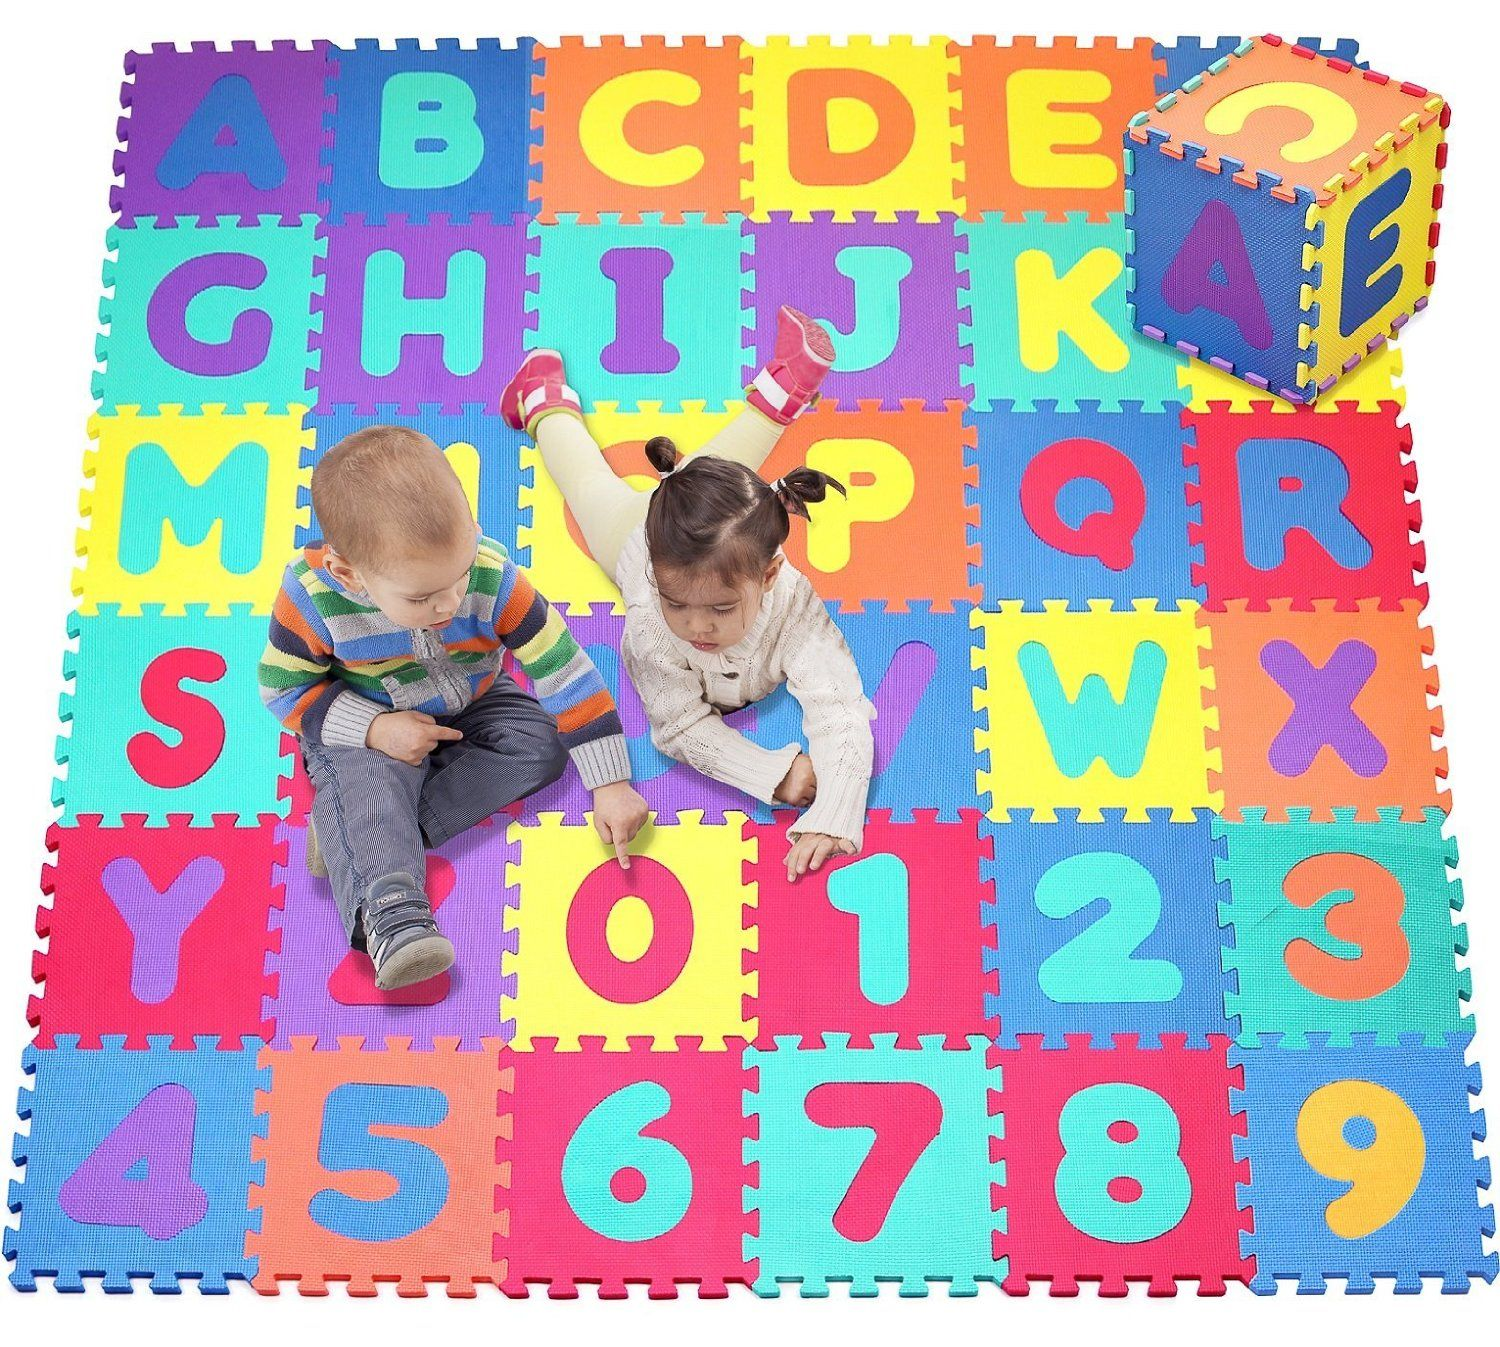 Amazon Com Click N 39 Play Foam Alphabet And Numbers Puzzle Play Mat 36 Tiles Tile Size 12 X 12 Inches Toys Amp Games Play Mat Kids Playmat Playmat